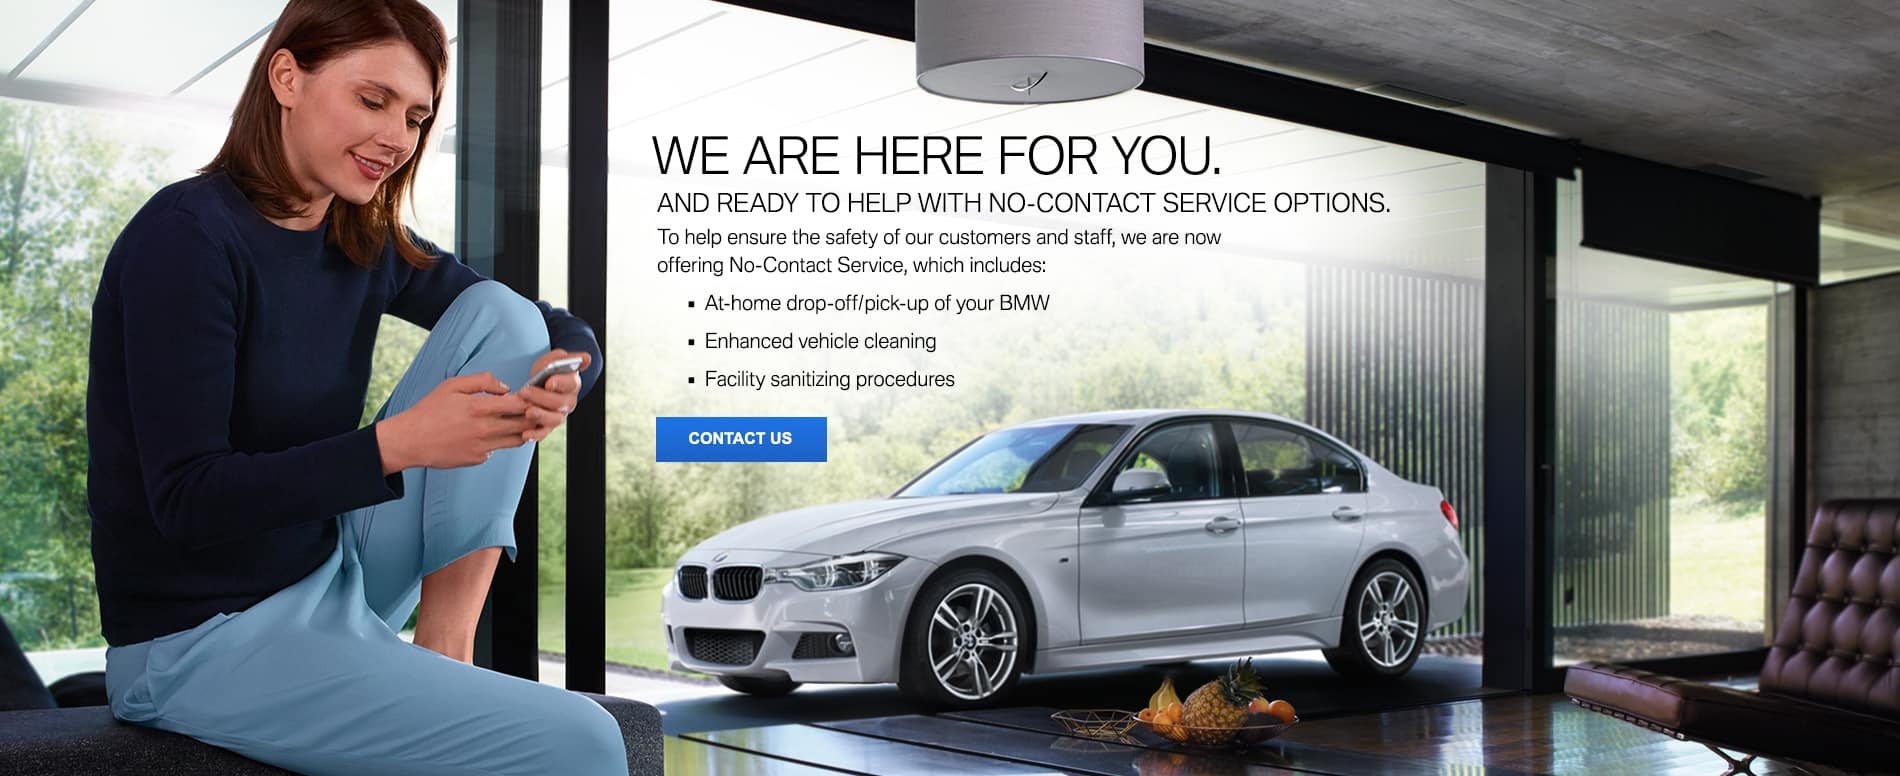 We are here for you. And ready to help with no-contact service options. To help ensure the safety of our customers and staff, we are now offering No-Contact Service, which includes: at-home drop-off/pick-up of your BMW, Enhanced vehicle cleaning, Facility sanitizing procedures. Contact Us.